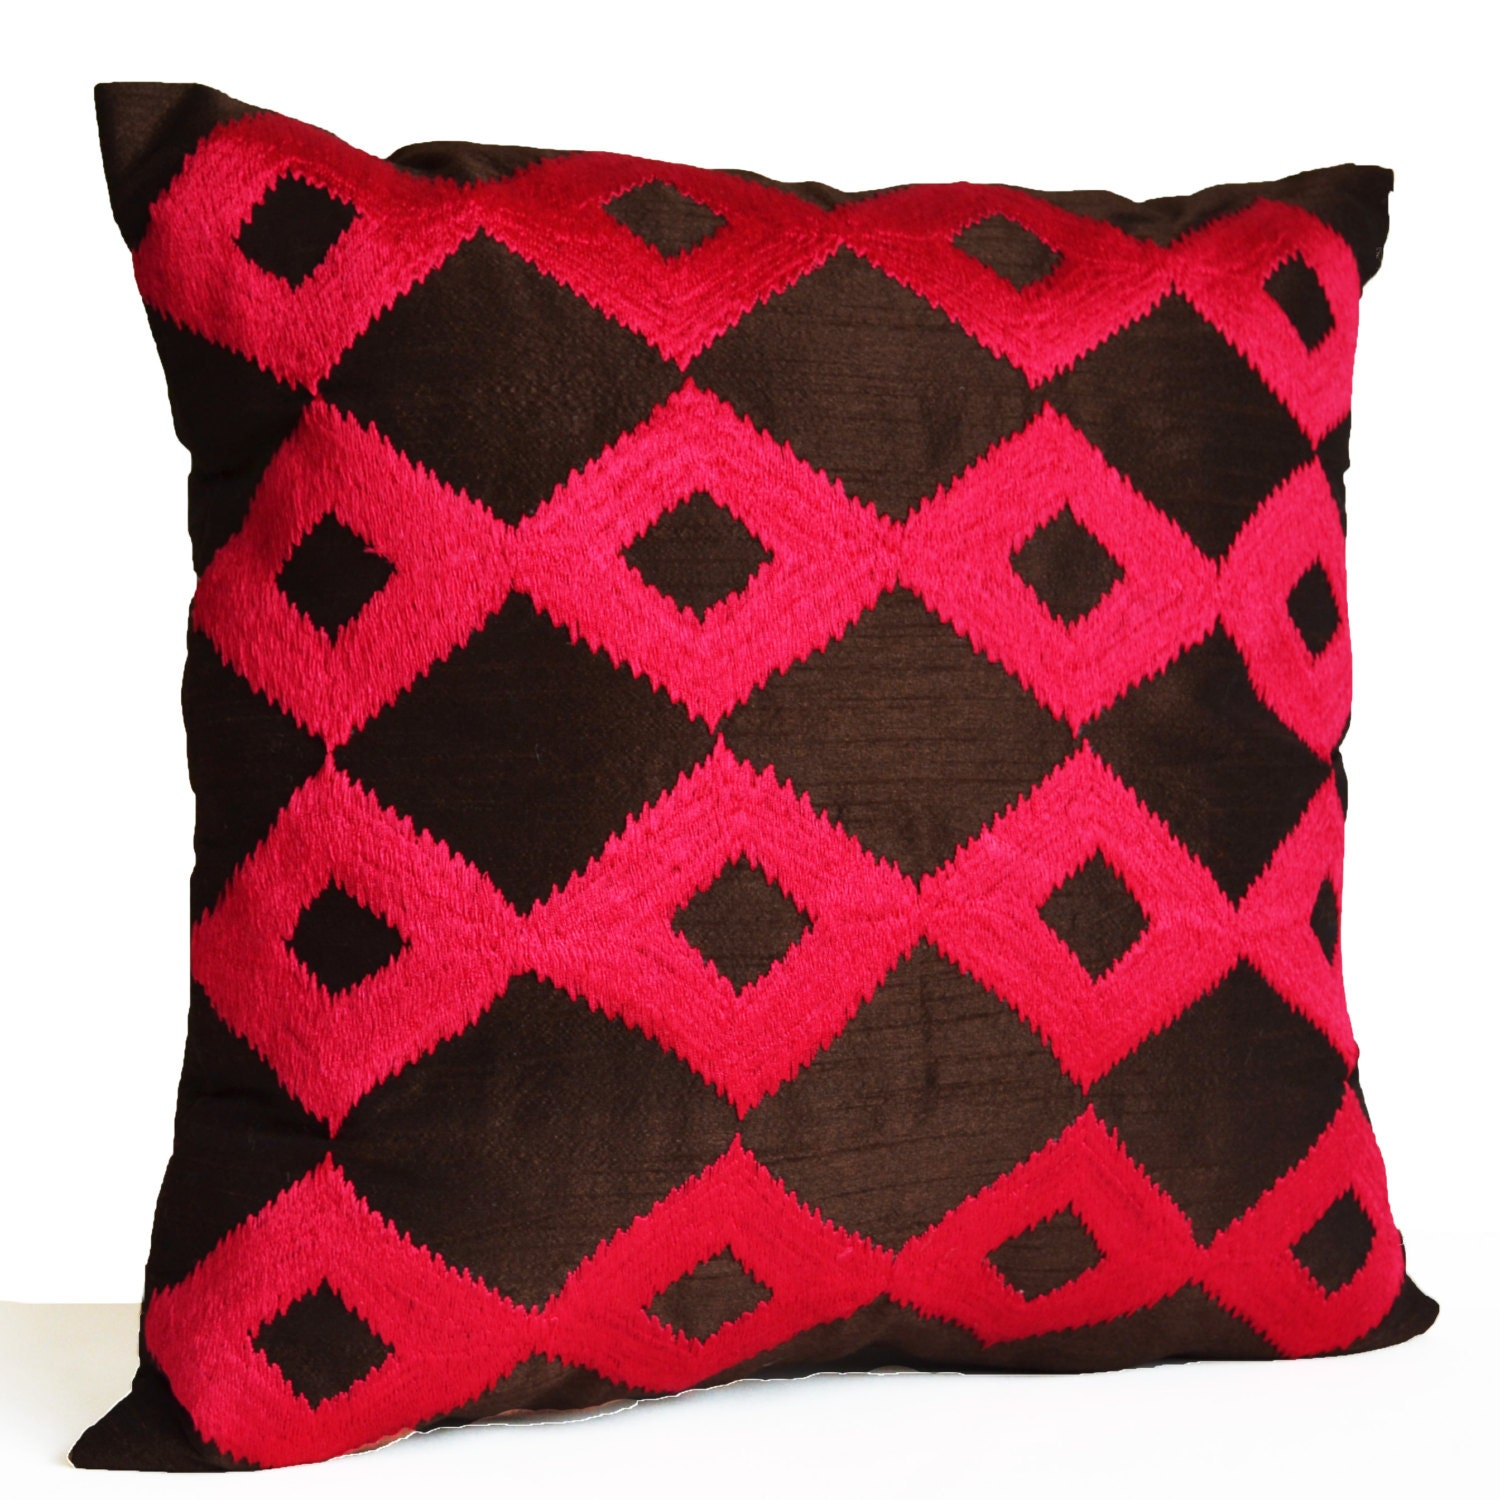 Decorative Throw Pillow Brown Hot Pink Pillows Fuchsia Ikat